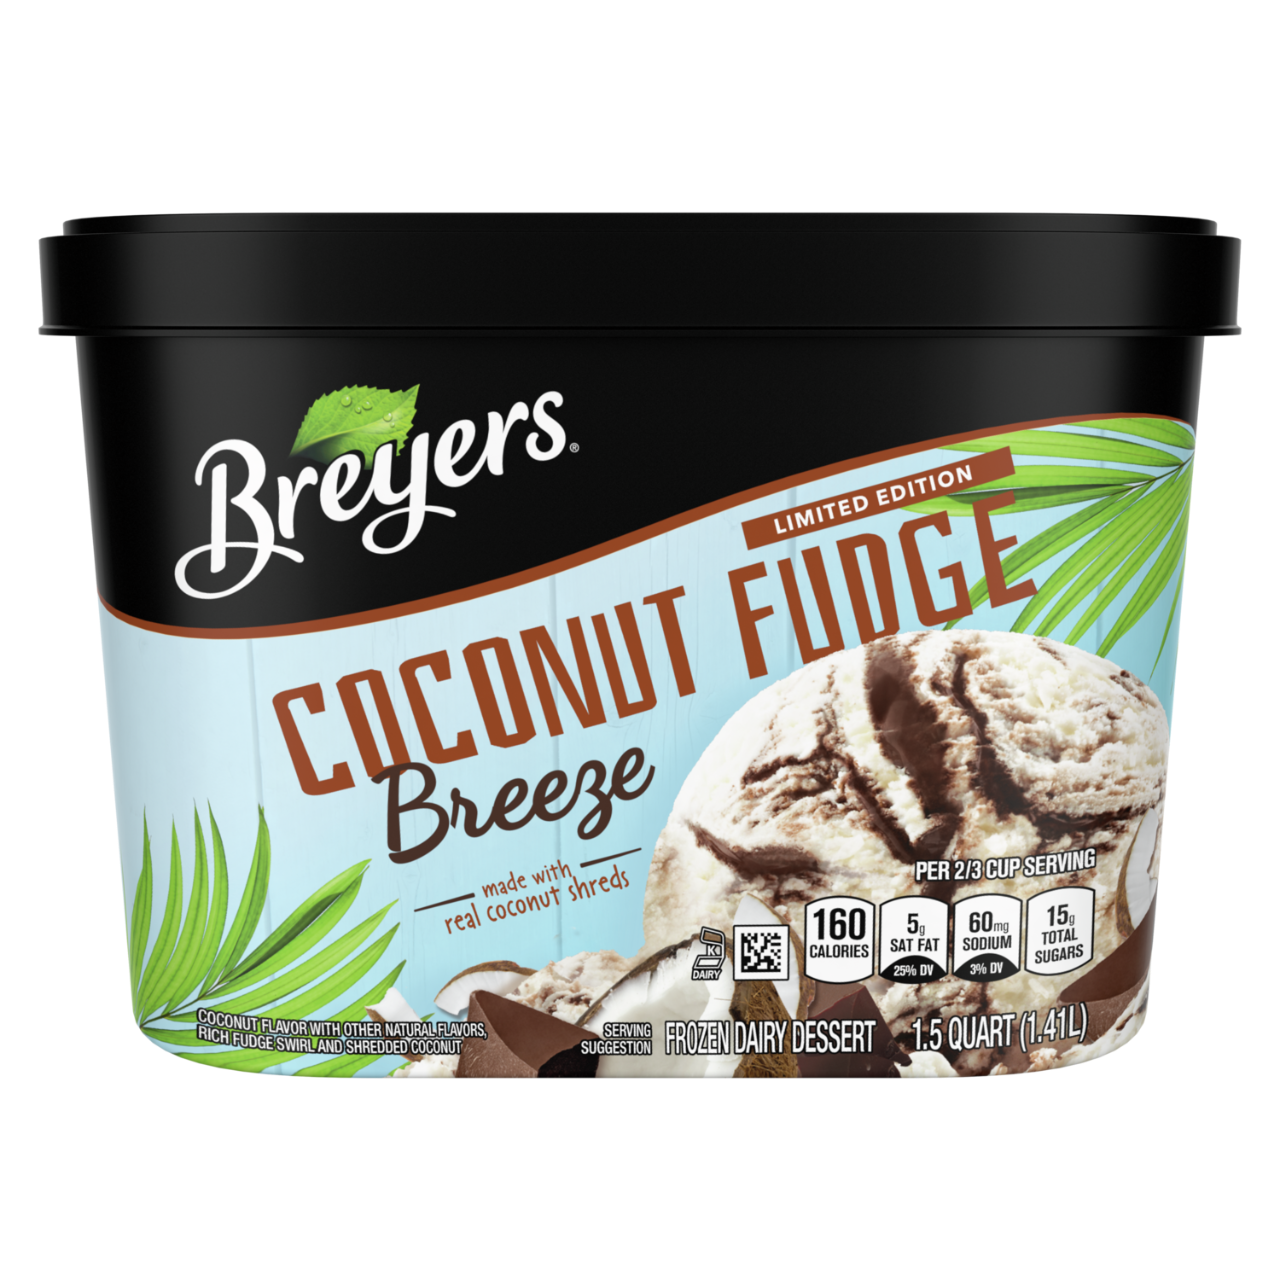 A 48 ounce tub of Breyers® Coconut Fudge Breeze front of pack